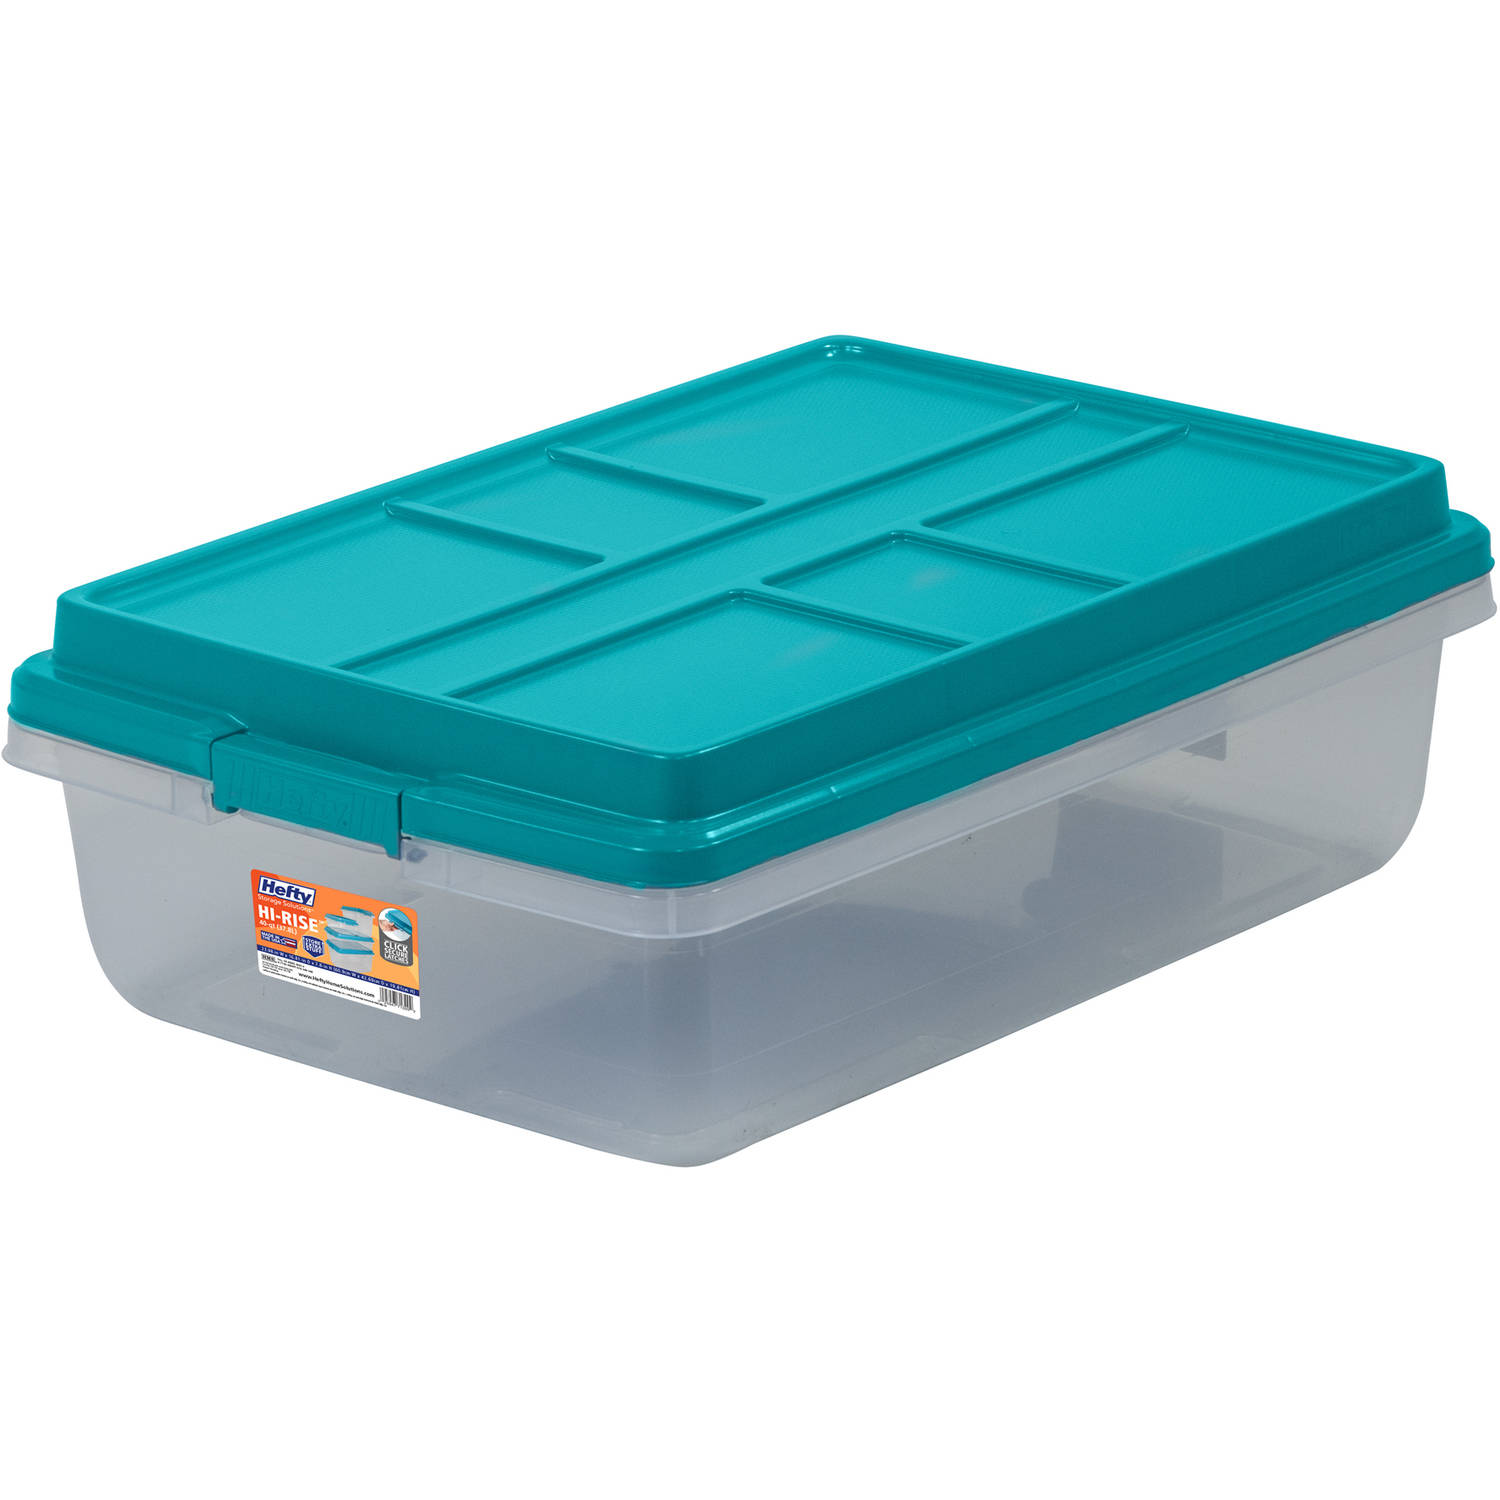 Hefty HI-RISE Storage Bins, 40 Qt. Stackable Bin with Latch, Teal/Clear